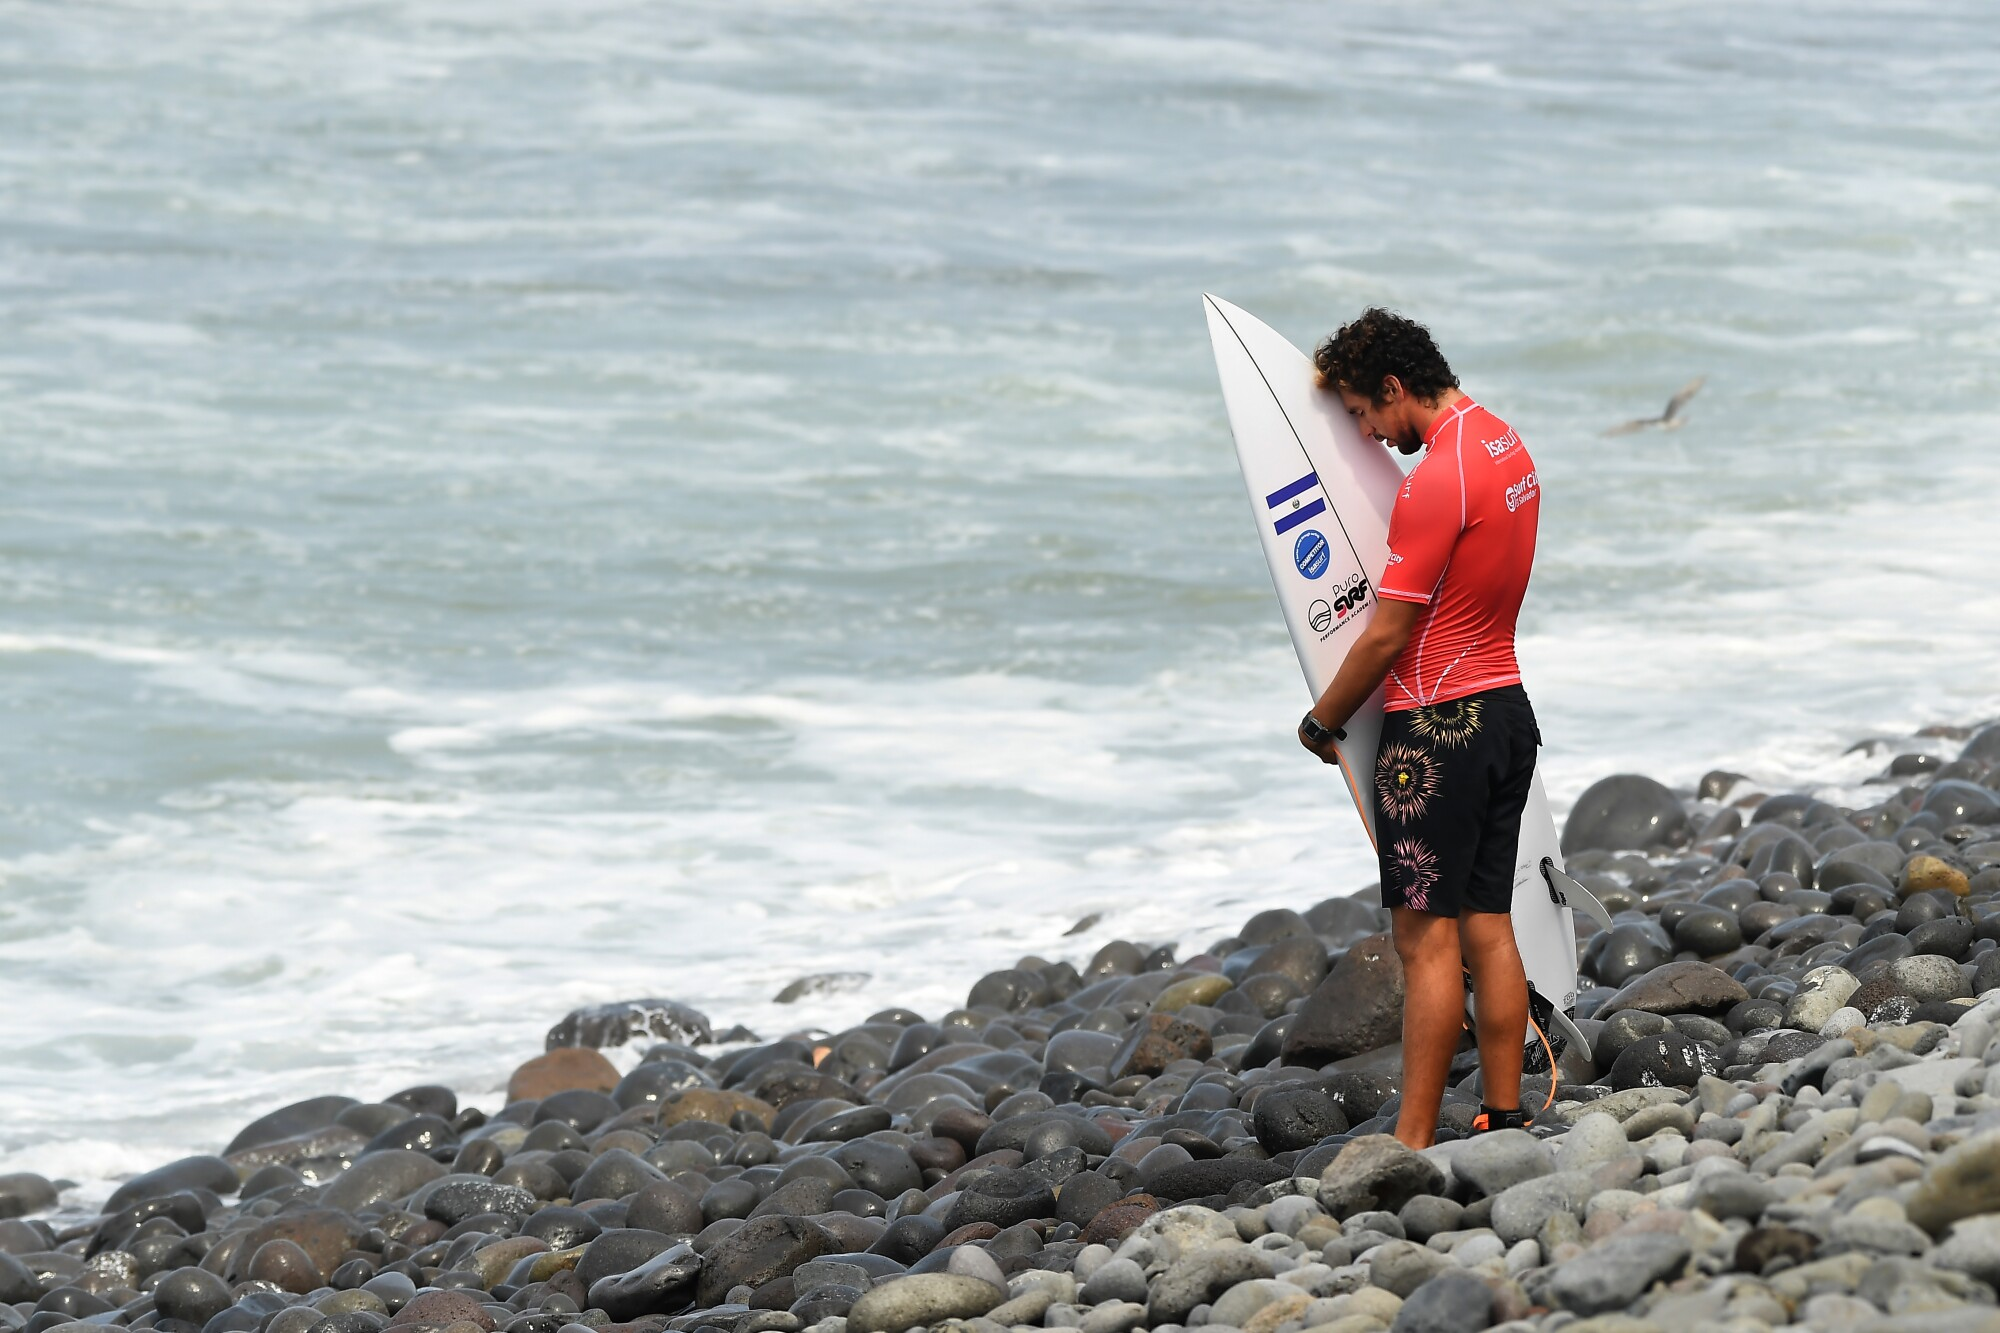 Surfer Bryan Perez prays before competing in the ISA World Surfing Games in El Salvador.